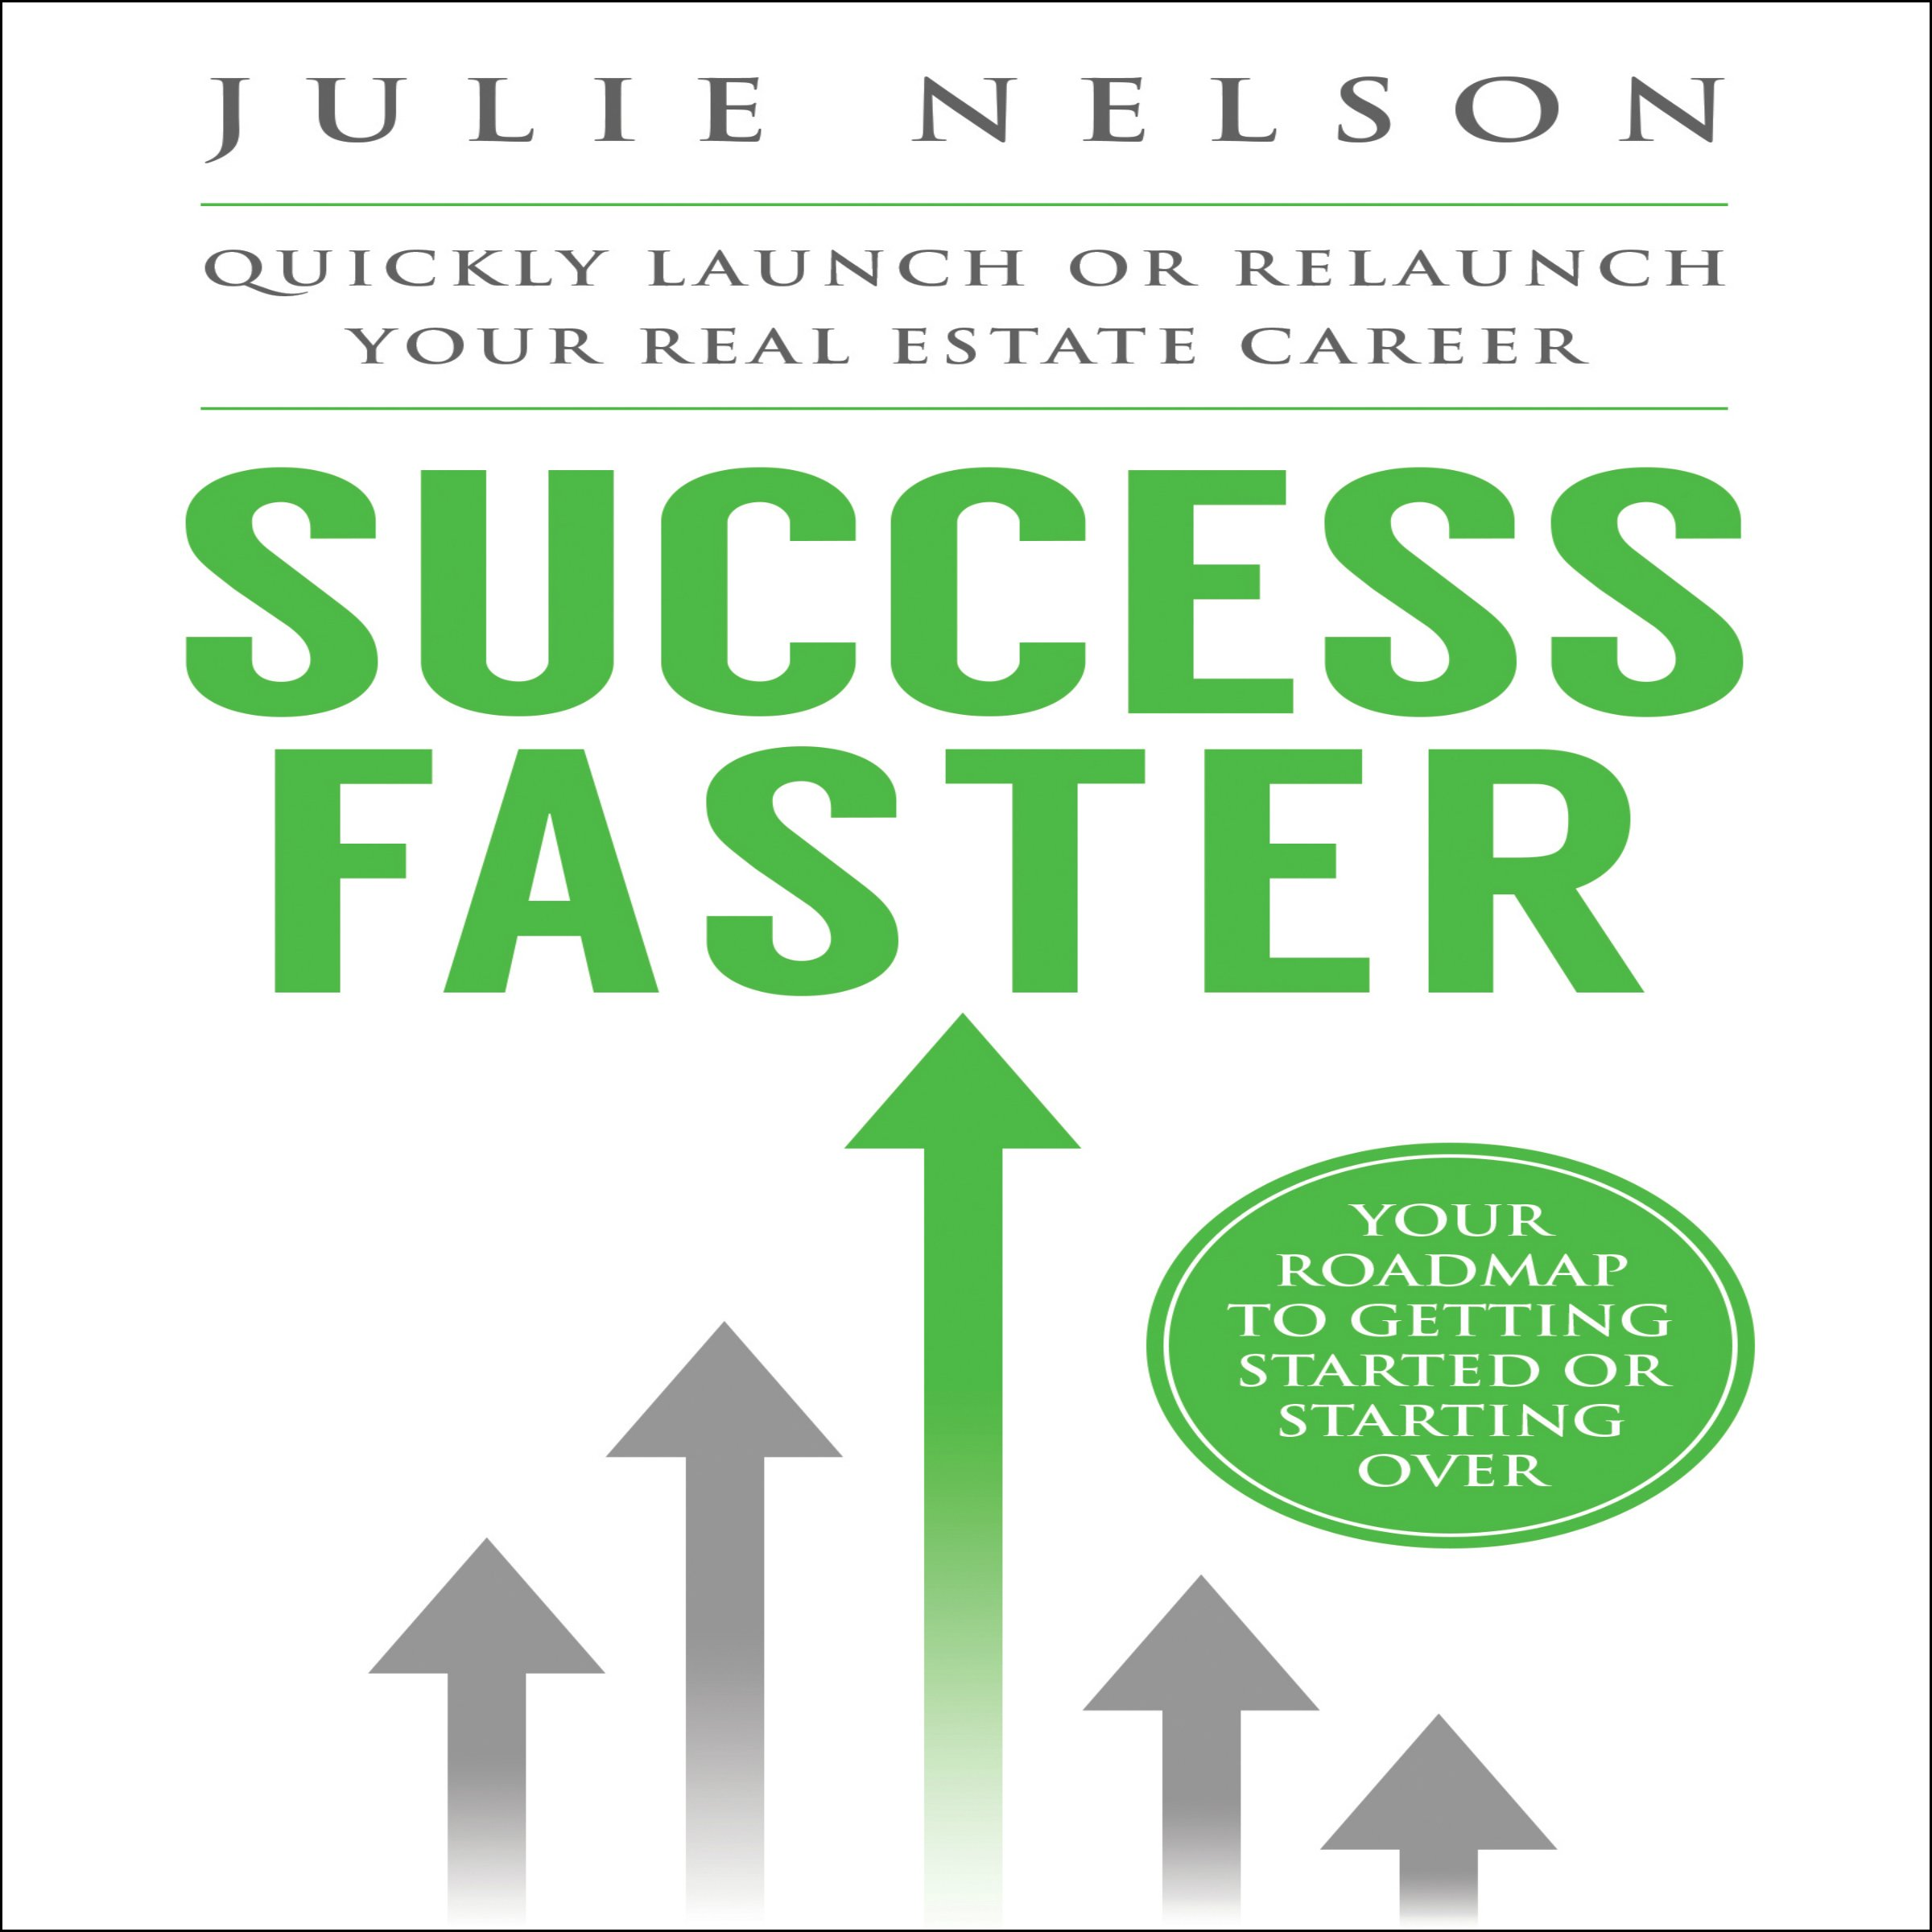 Success Faster: Quickly Launch or Relaunch Your Real Estate Career: Your Roadmap to Getting Started or Starting Over